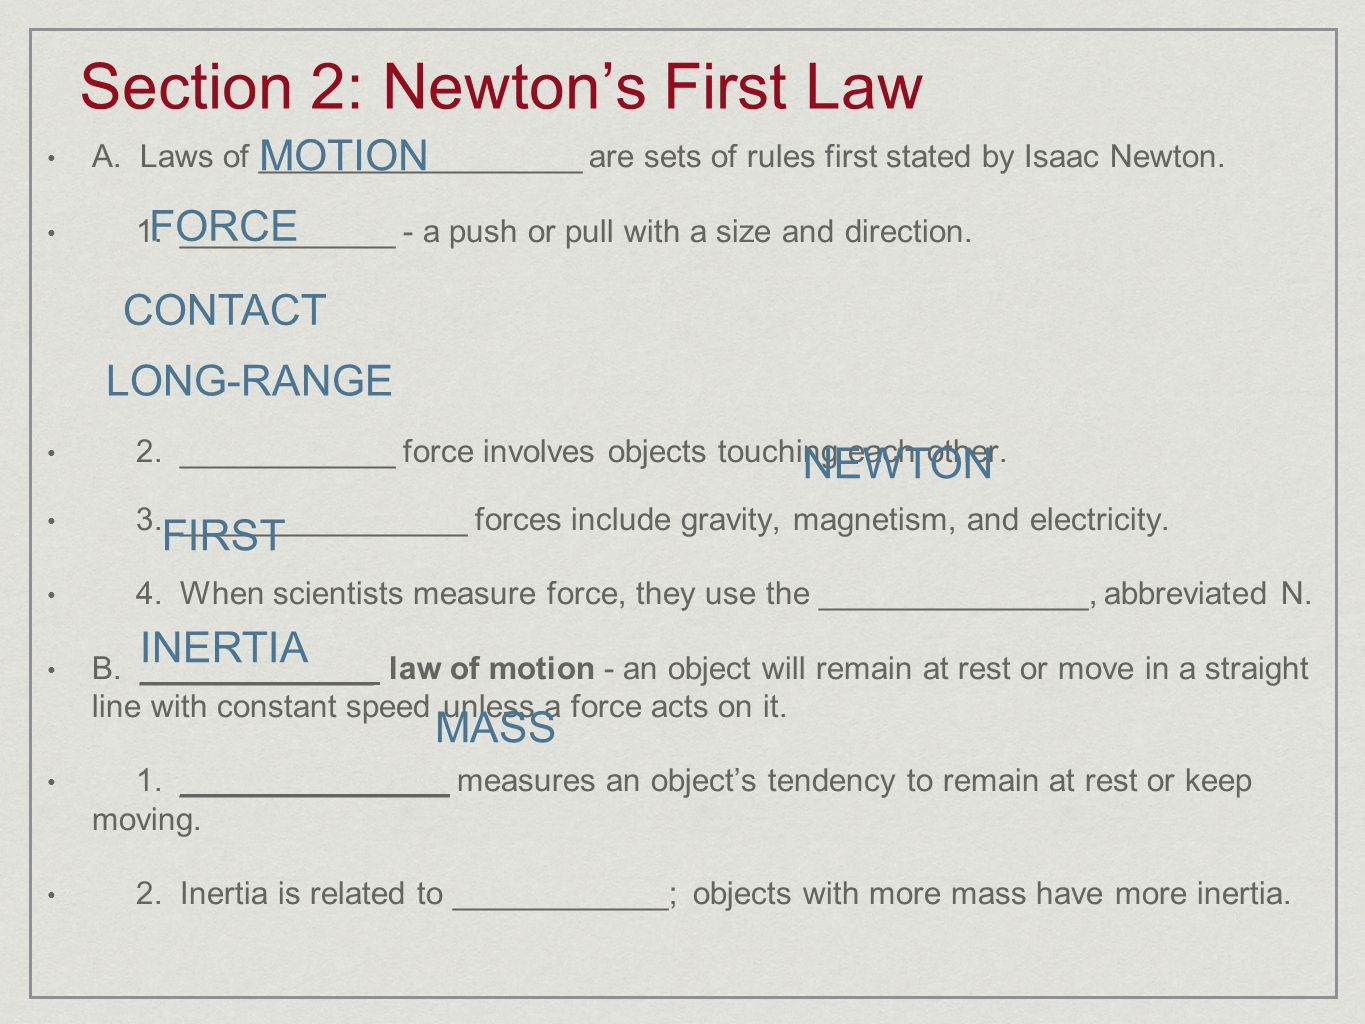 worksheet Force And Motion Worksheet newtons laws of motion ppt video online download 4 section